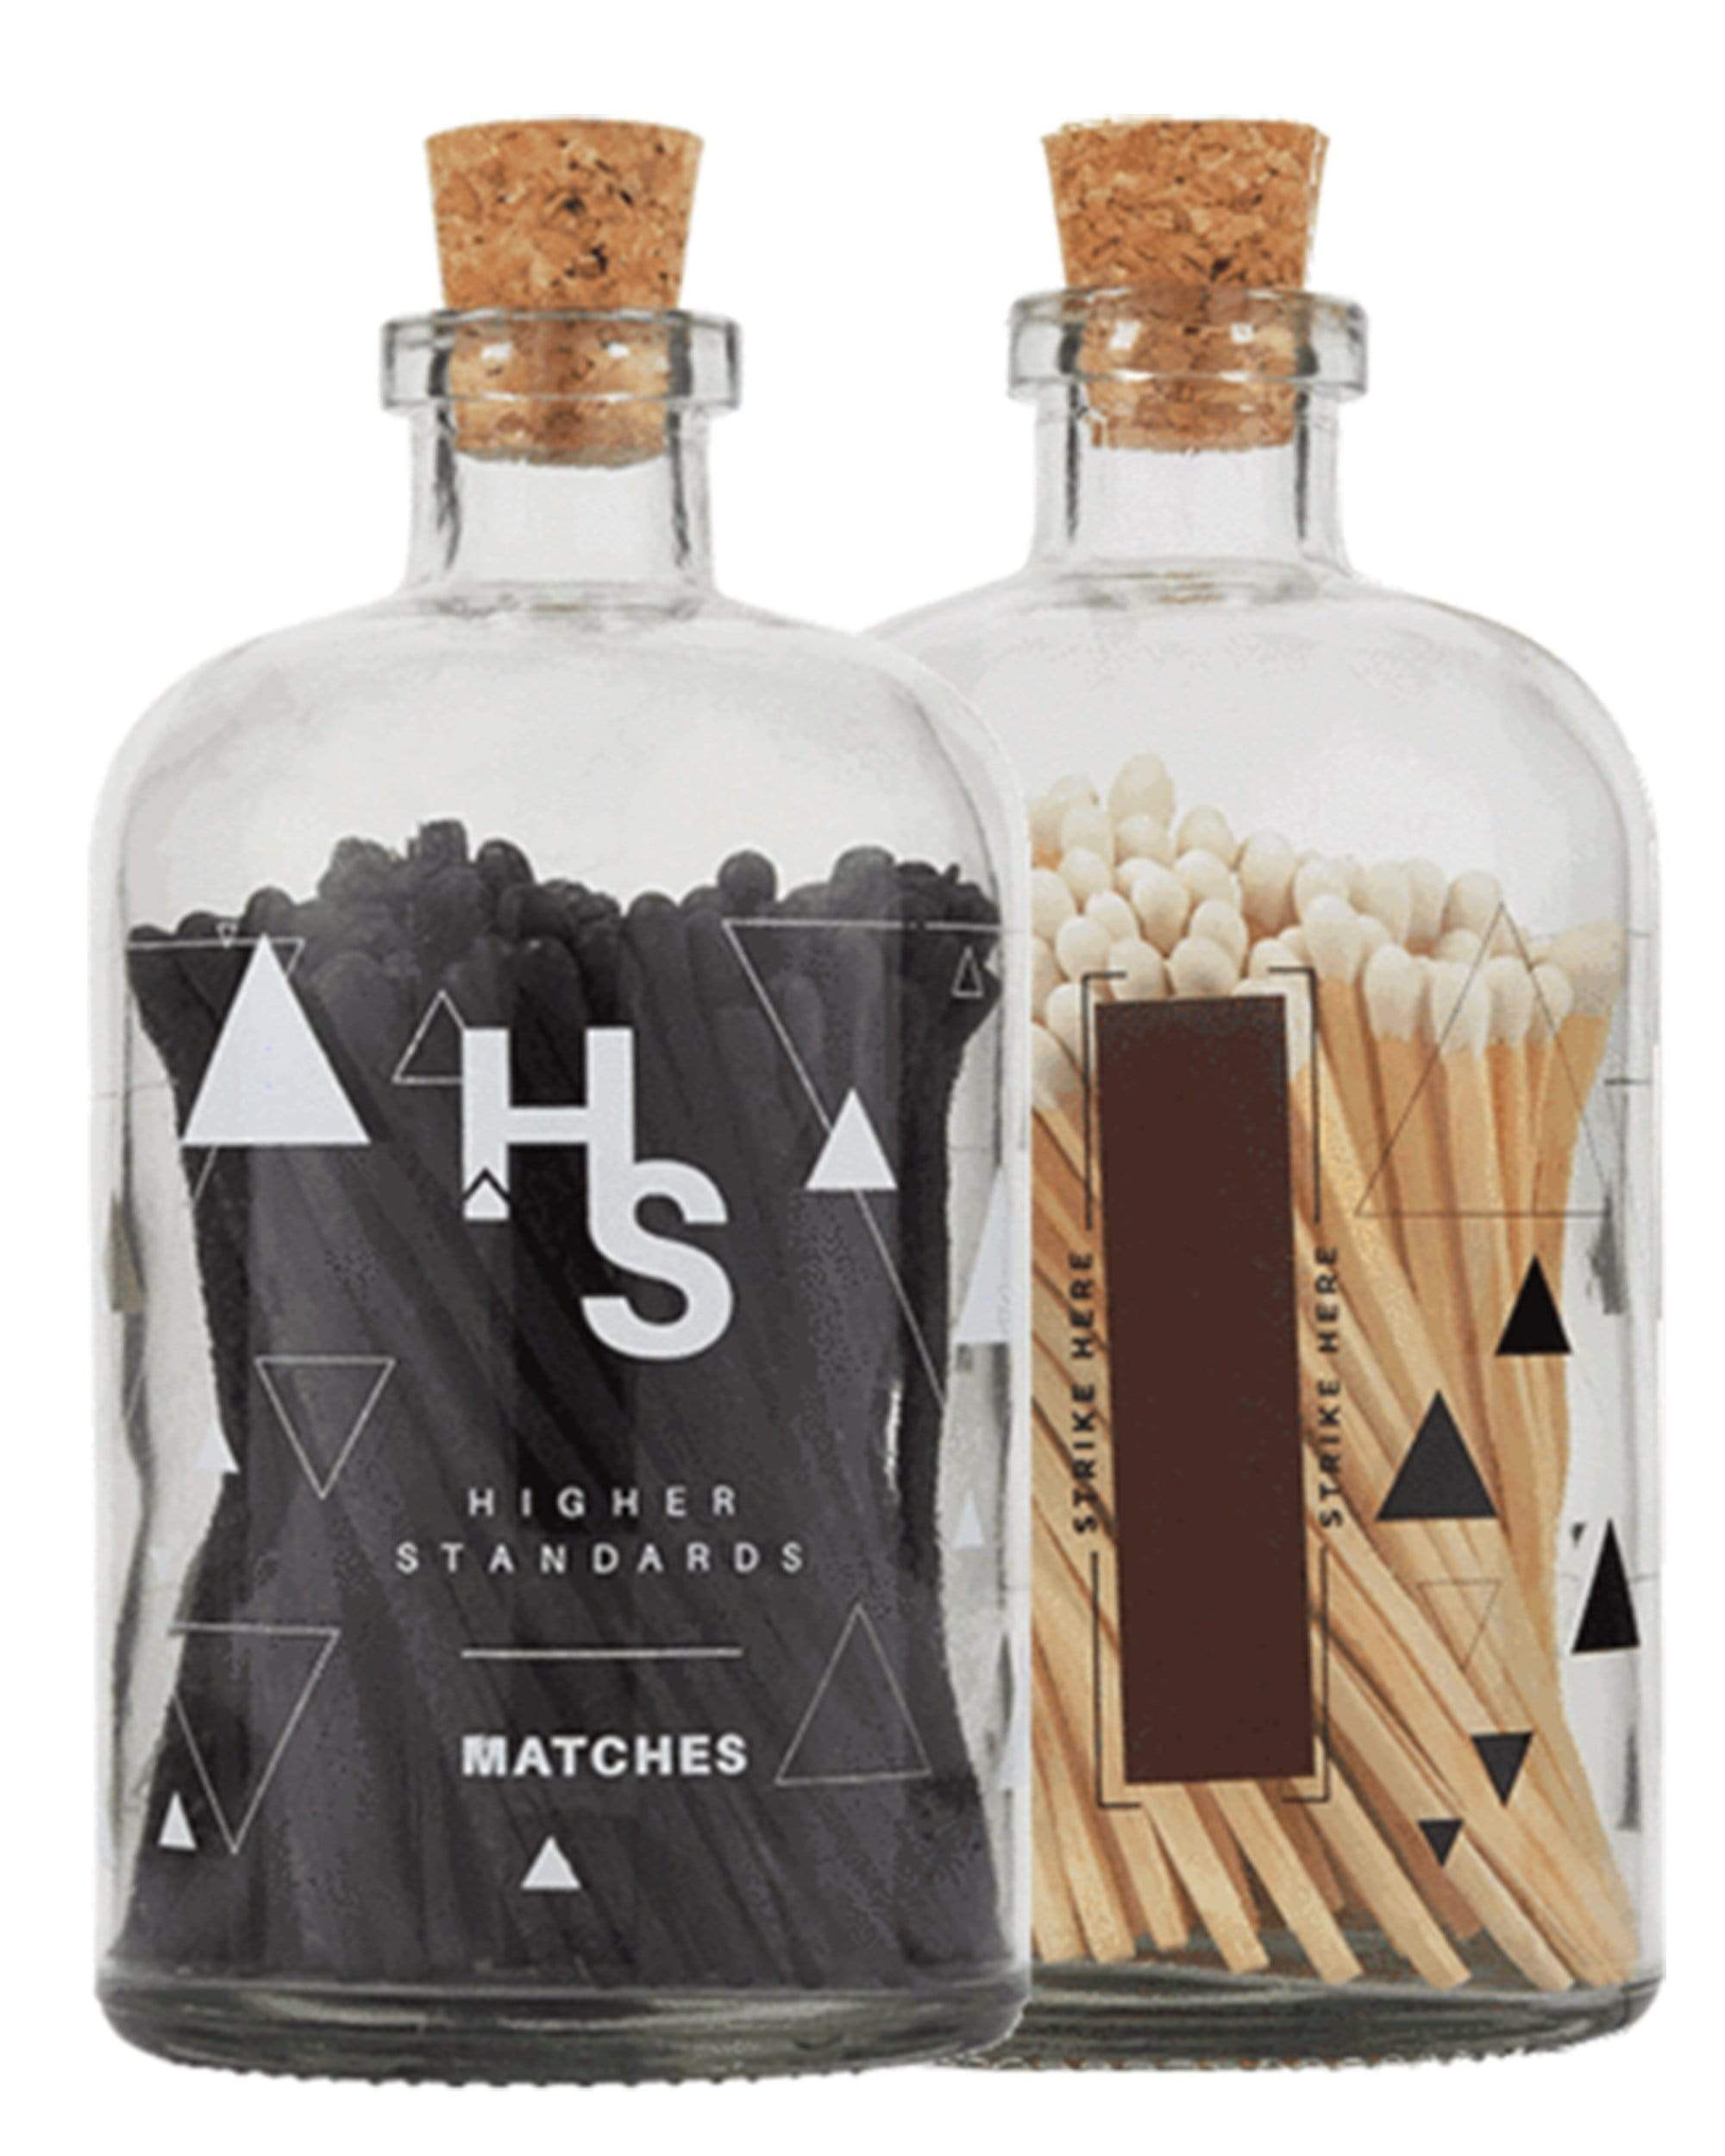 Higher Standards Large Match Bottle